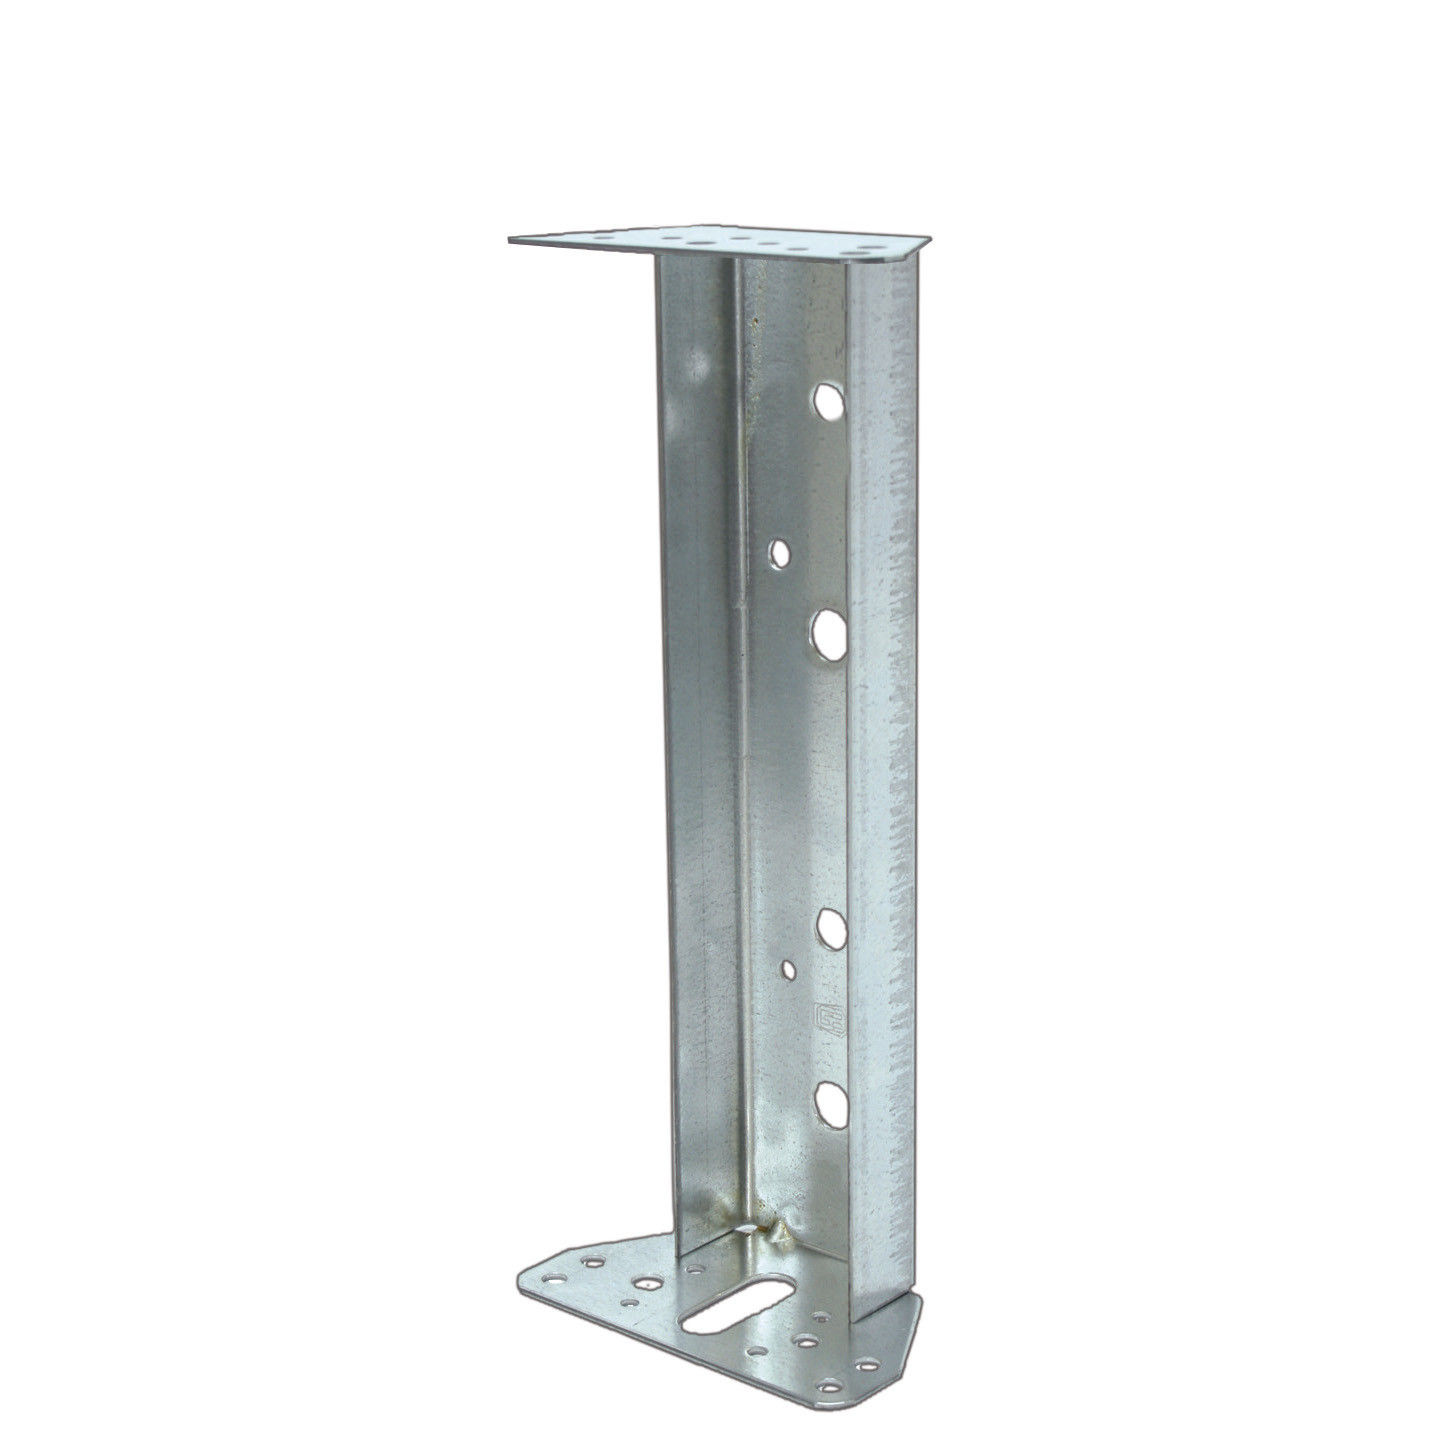 Window front frame support 60x70x240 115x2 ZM